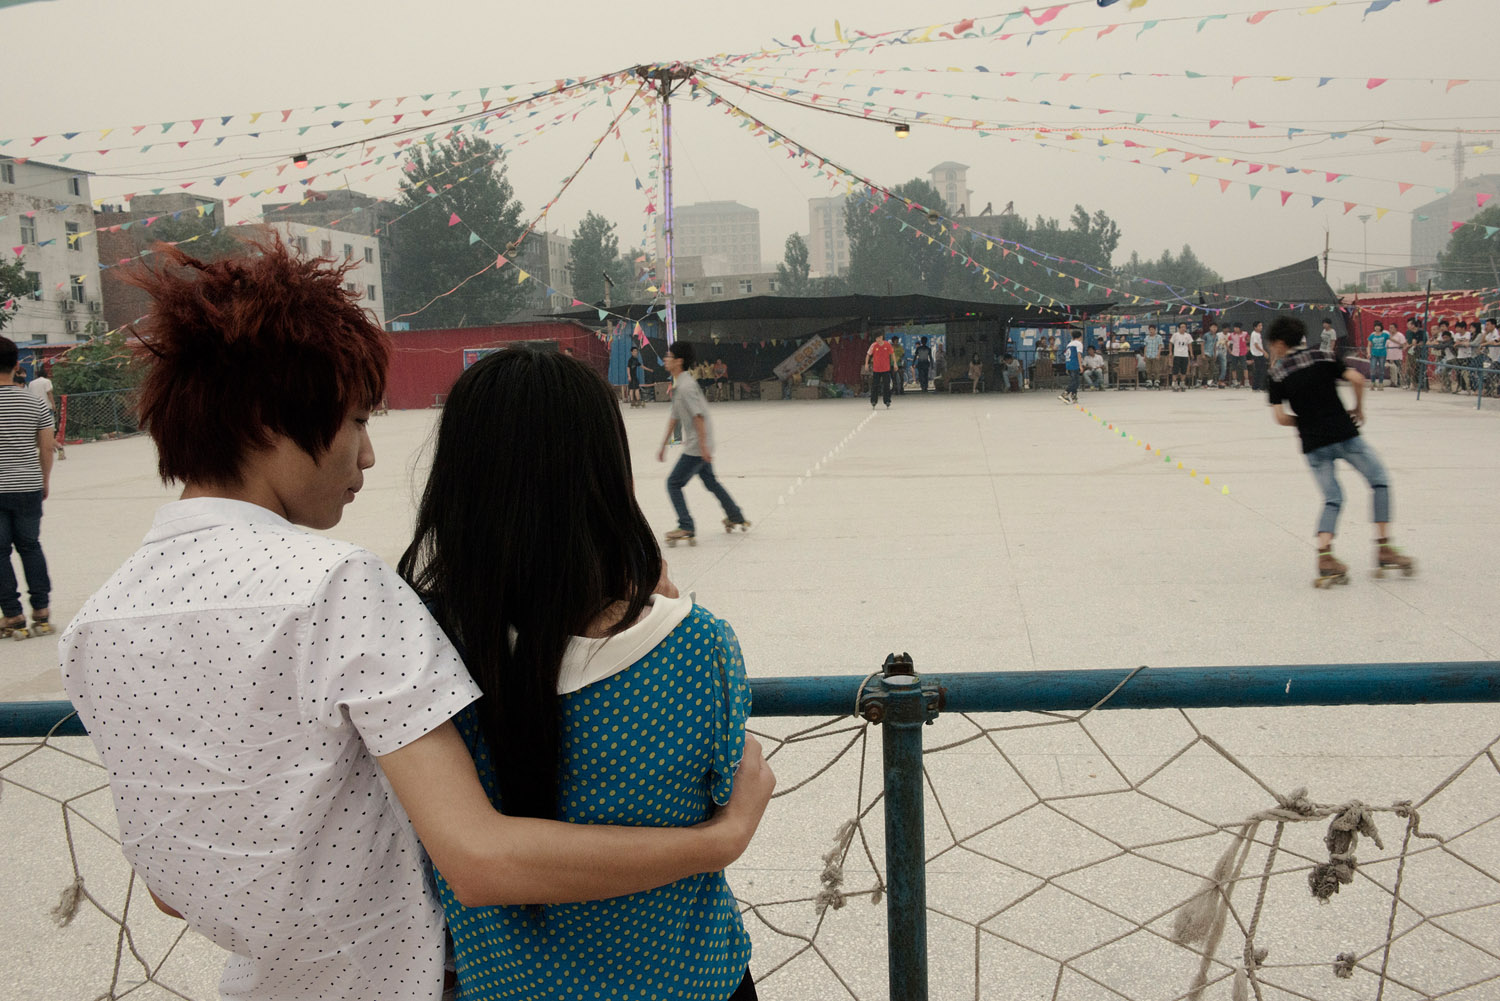 A young couple by a skating ring. Skating is one of the most popular out-of-work activity for the Foxconn workers here.